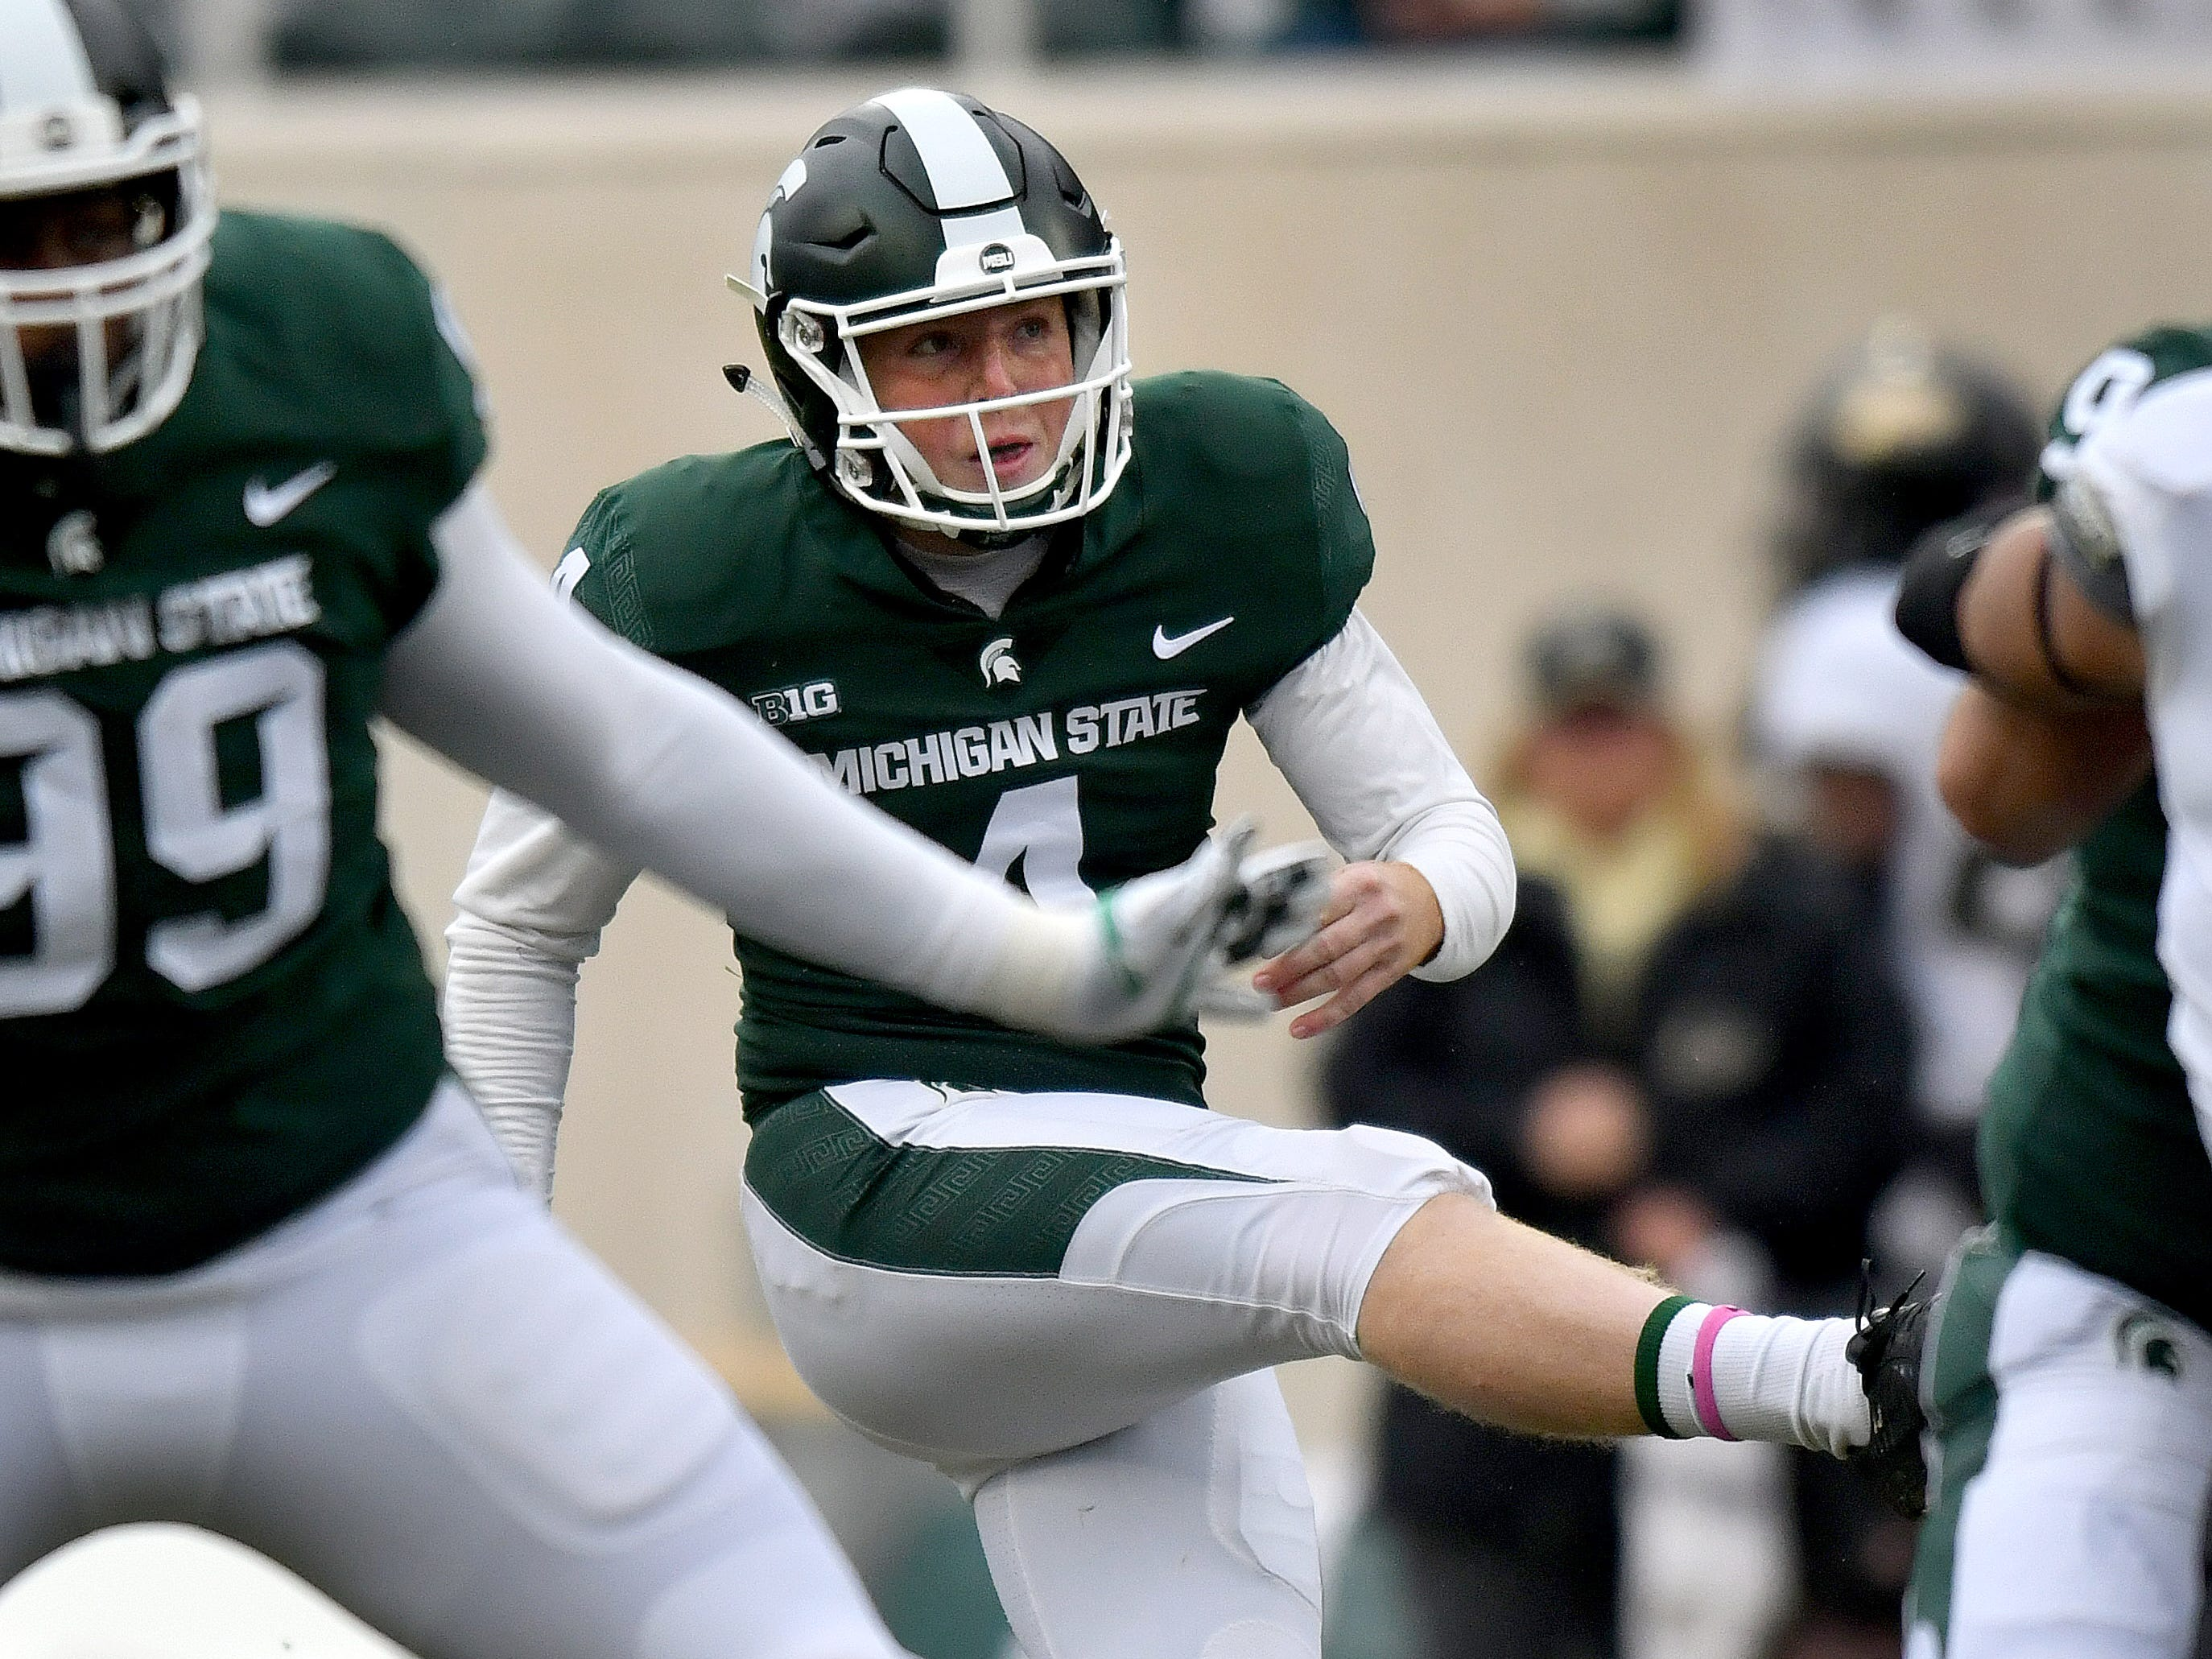 KICKER: Matt Coghlin – He earned first-team All-Big Ten honors as a sophomore in 2018. Coghlin was 18-of-22 on field goals (.818) and a perfect 25-of-25 on extra points. He ranked among MSU's single-season leaders in field-goal percentage (fifth at .818) and field goals (tied for eighth with 18).